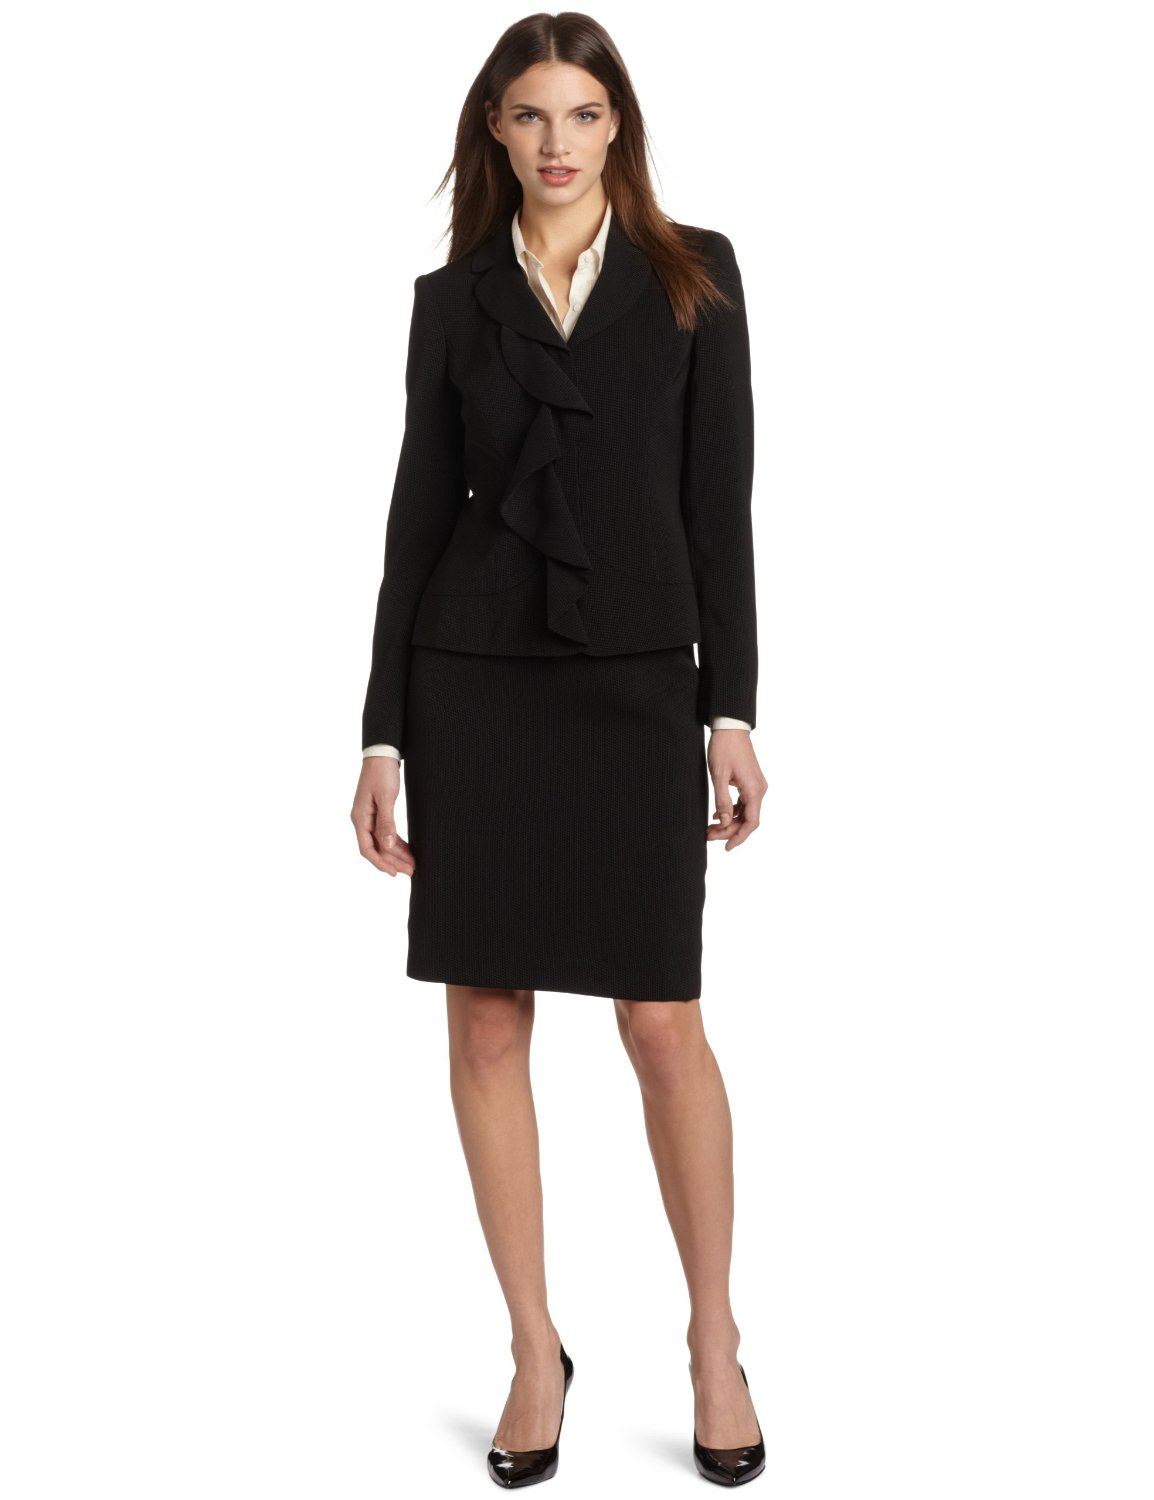 Business Casual Dresses For Women